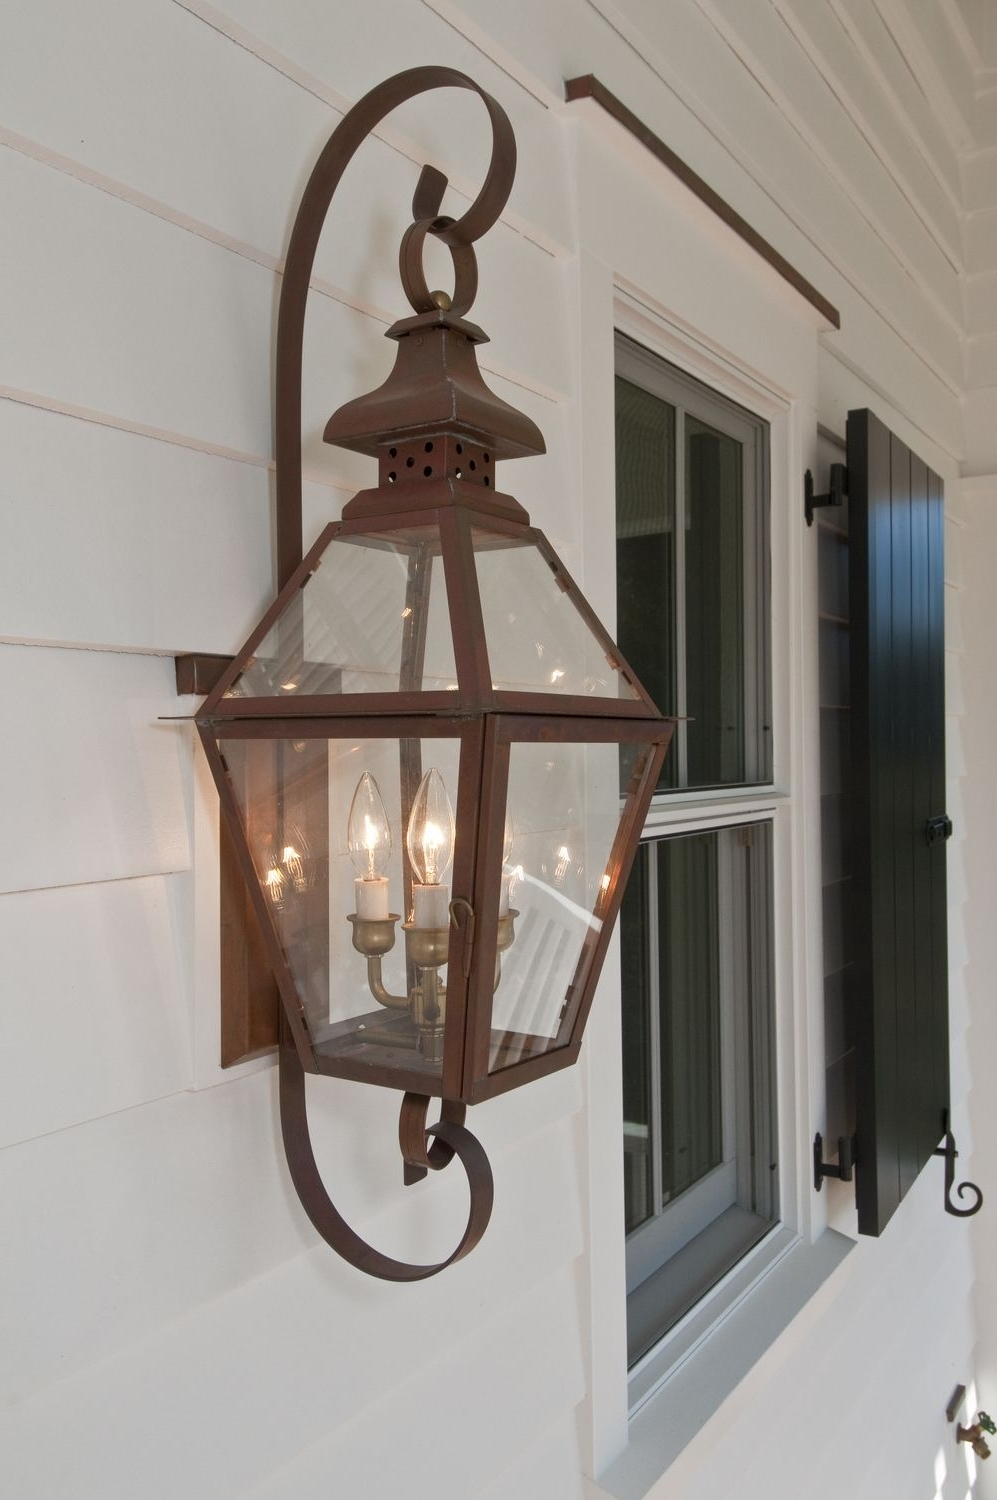 Outdoor Electric Lanterns In Favorite The Tradd Street Ii Lantern — Gas Or Electric (View 12 of 20)